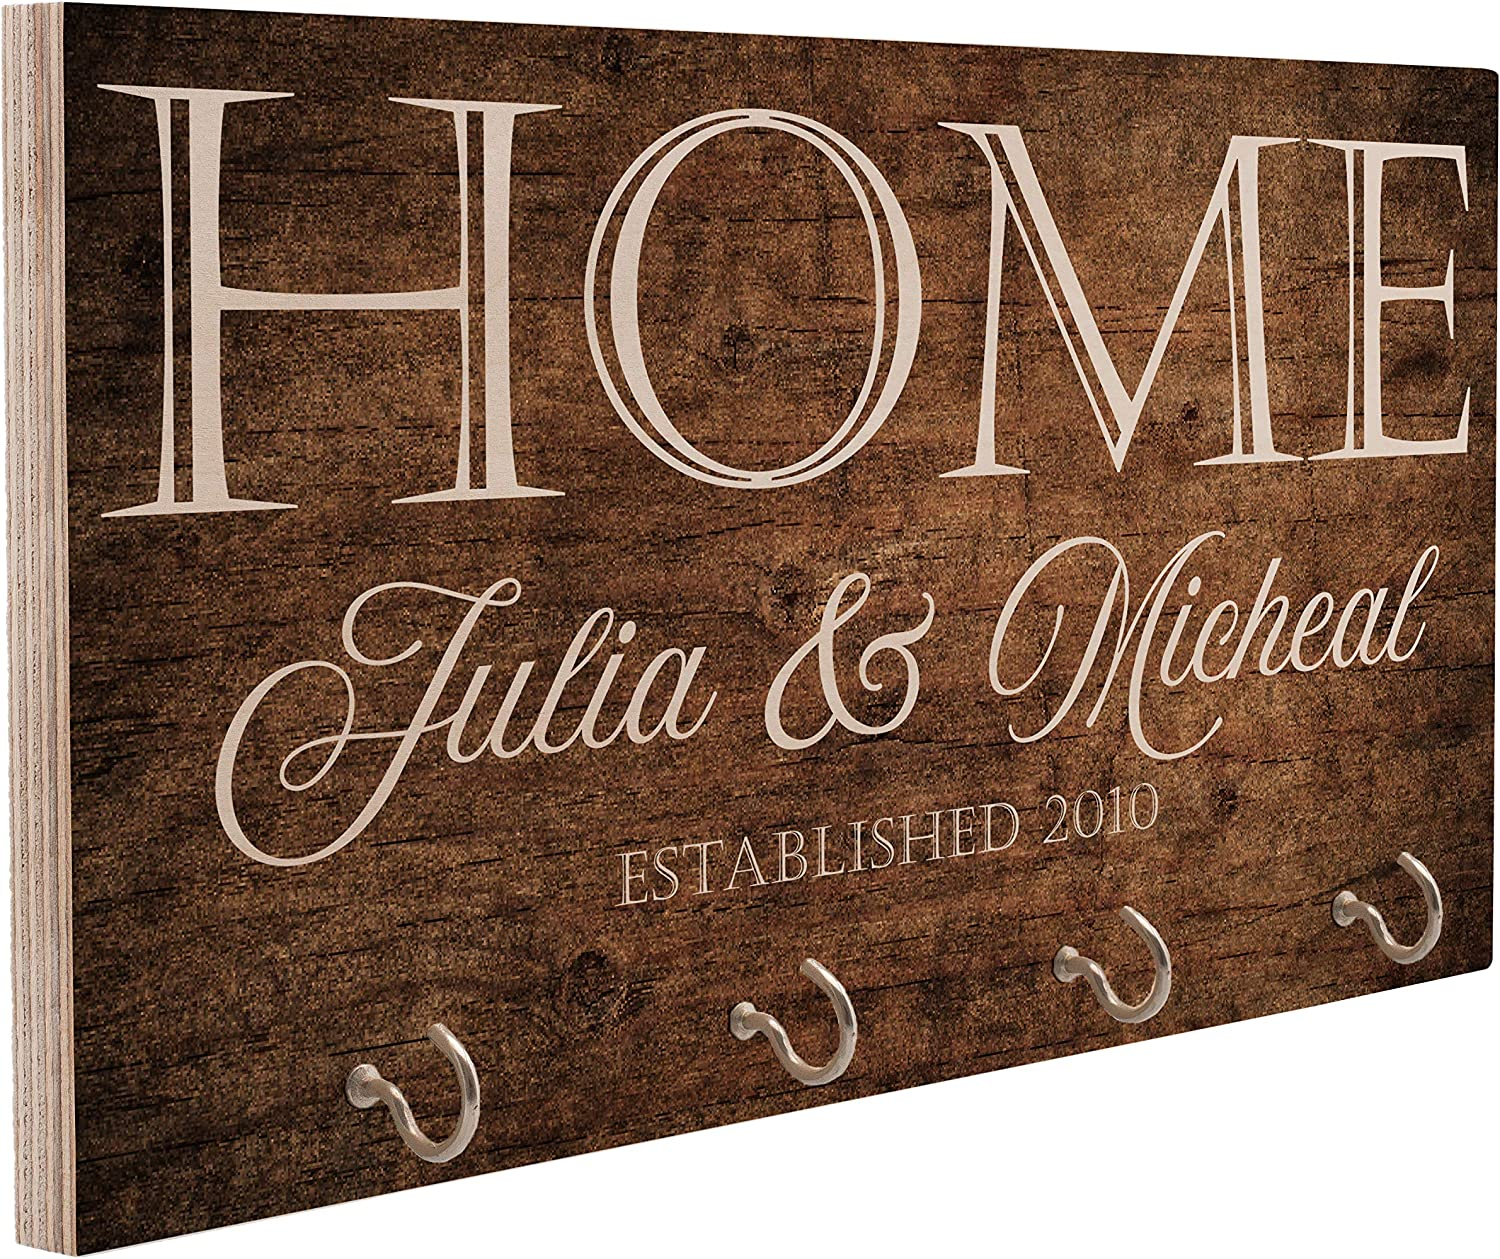 Personalized Wood Key Hanger for Wall | New Home Décor Gift for Wedding Housewarming | Customized Gifts for Couple Mr Mrs Key Ring Holder Hook | Key Rack | C02D04